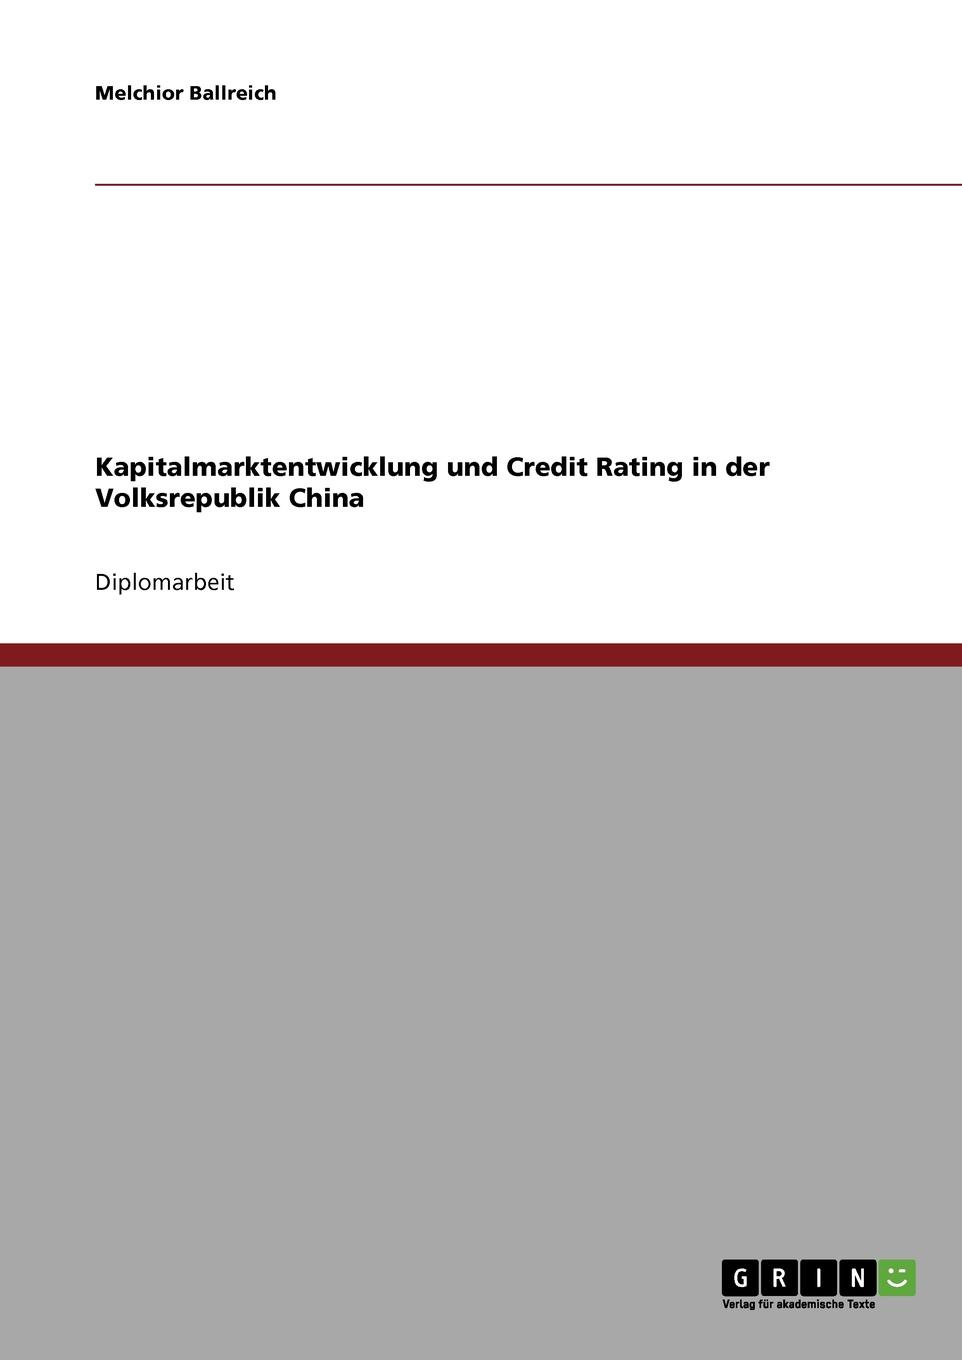 Melchior Ballreich Kapitalmarktentwicklung und Credit Rating in der Volksrepublik China melchior ballreich kapitalmarktentwicklung und credit rating in der volksrepublik china